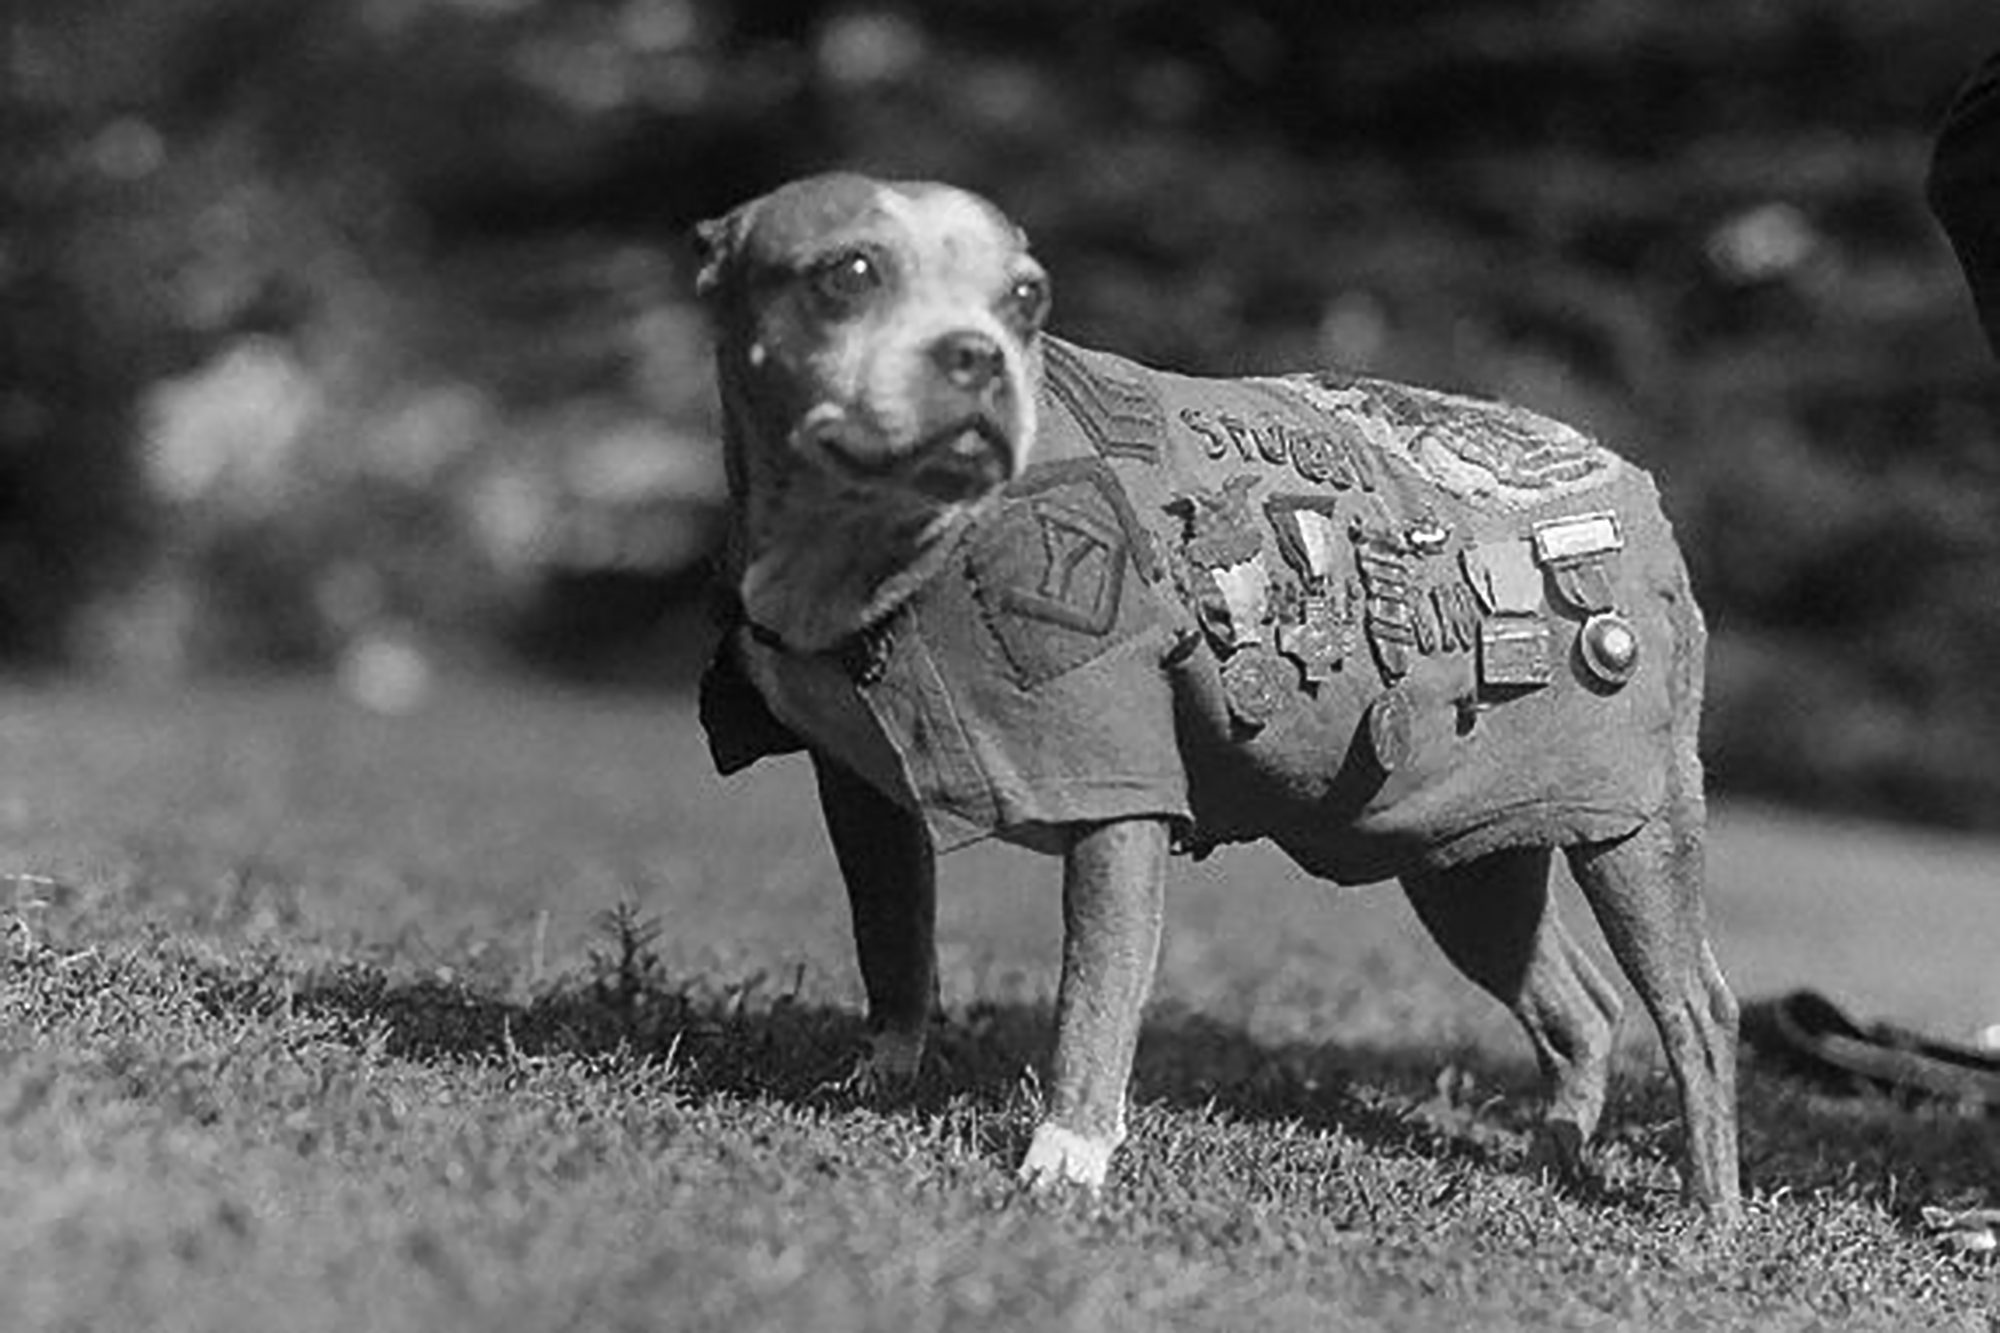 American Staffordshire terrier named Stubby who was a Sergeant during WWI